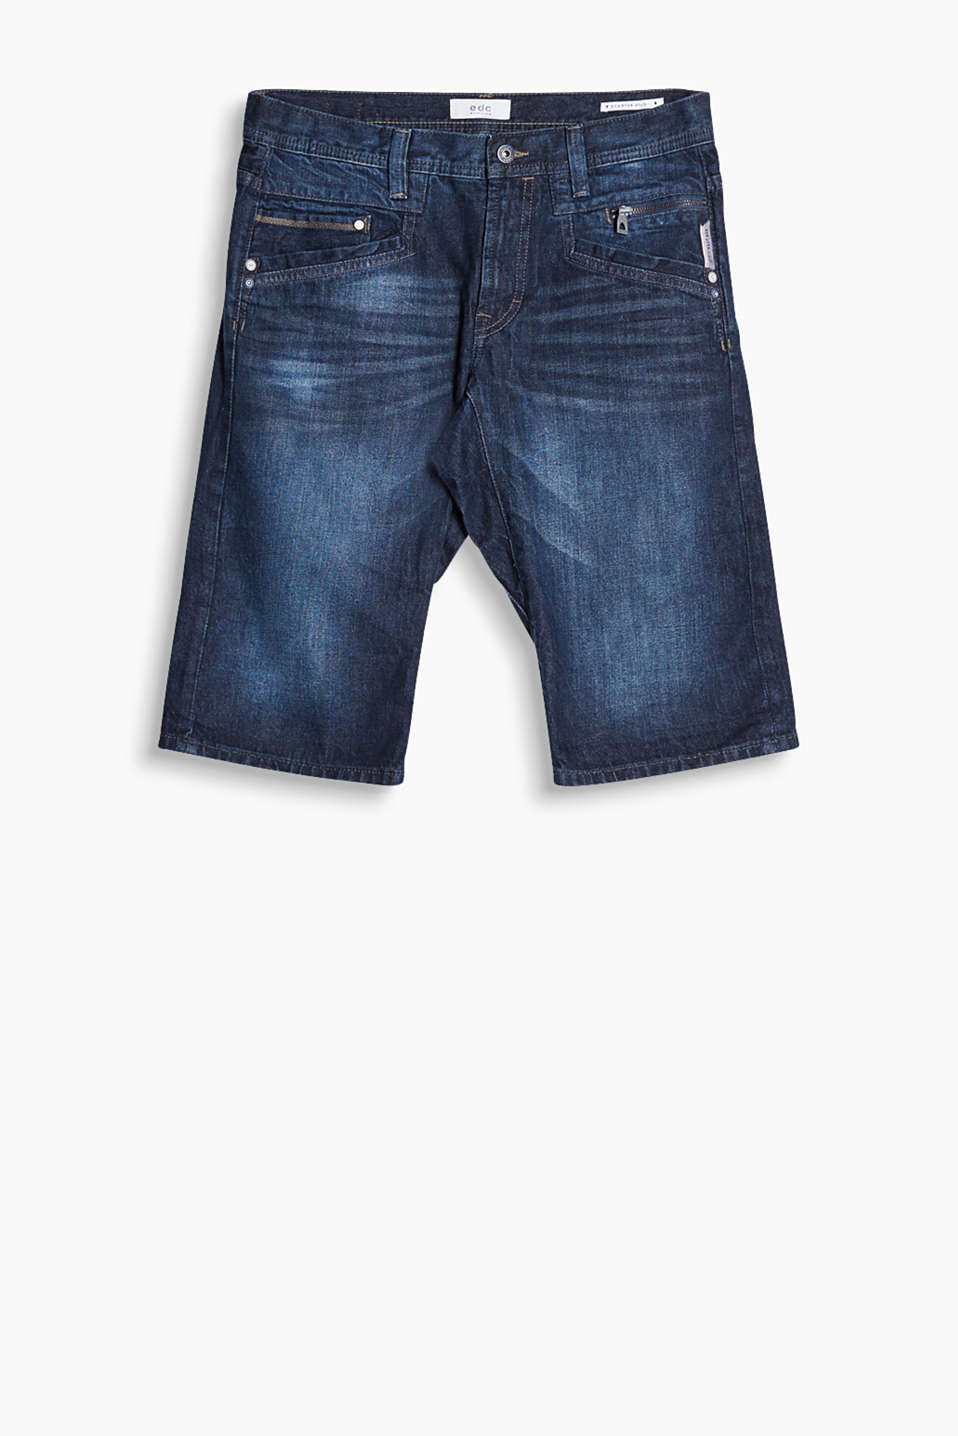 Denim shorts in a five-pocket style with urban garment-washed effects